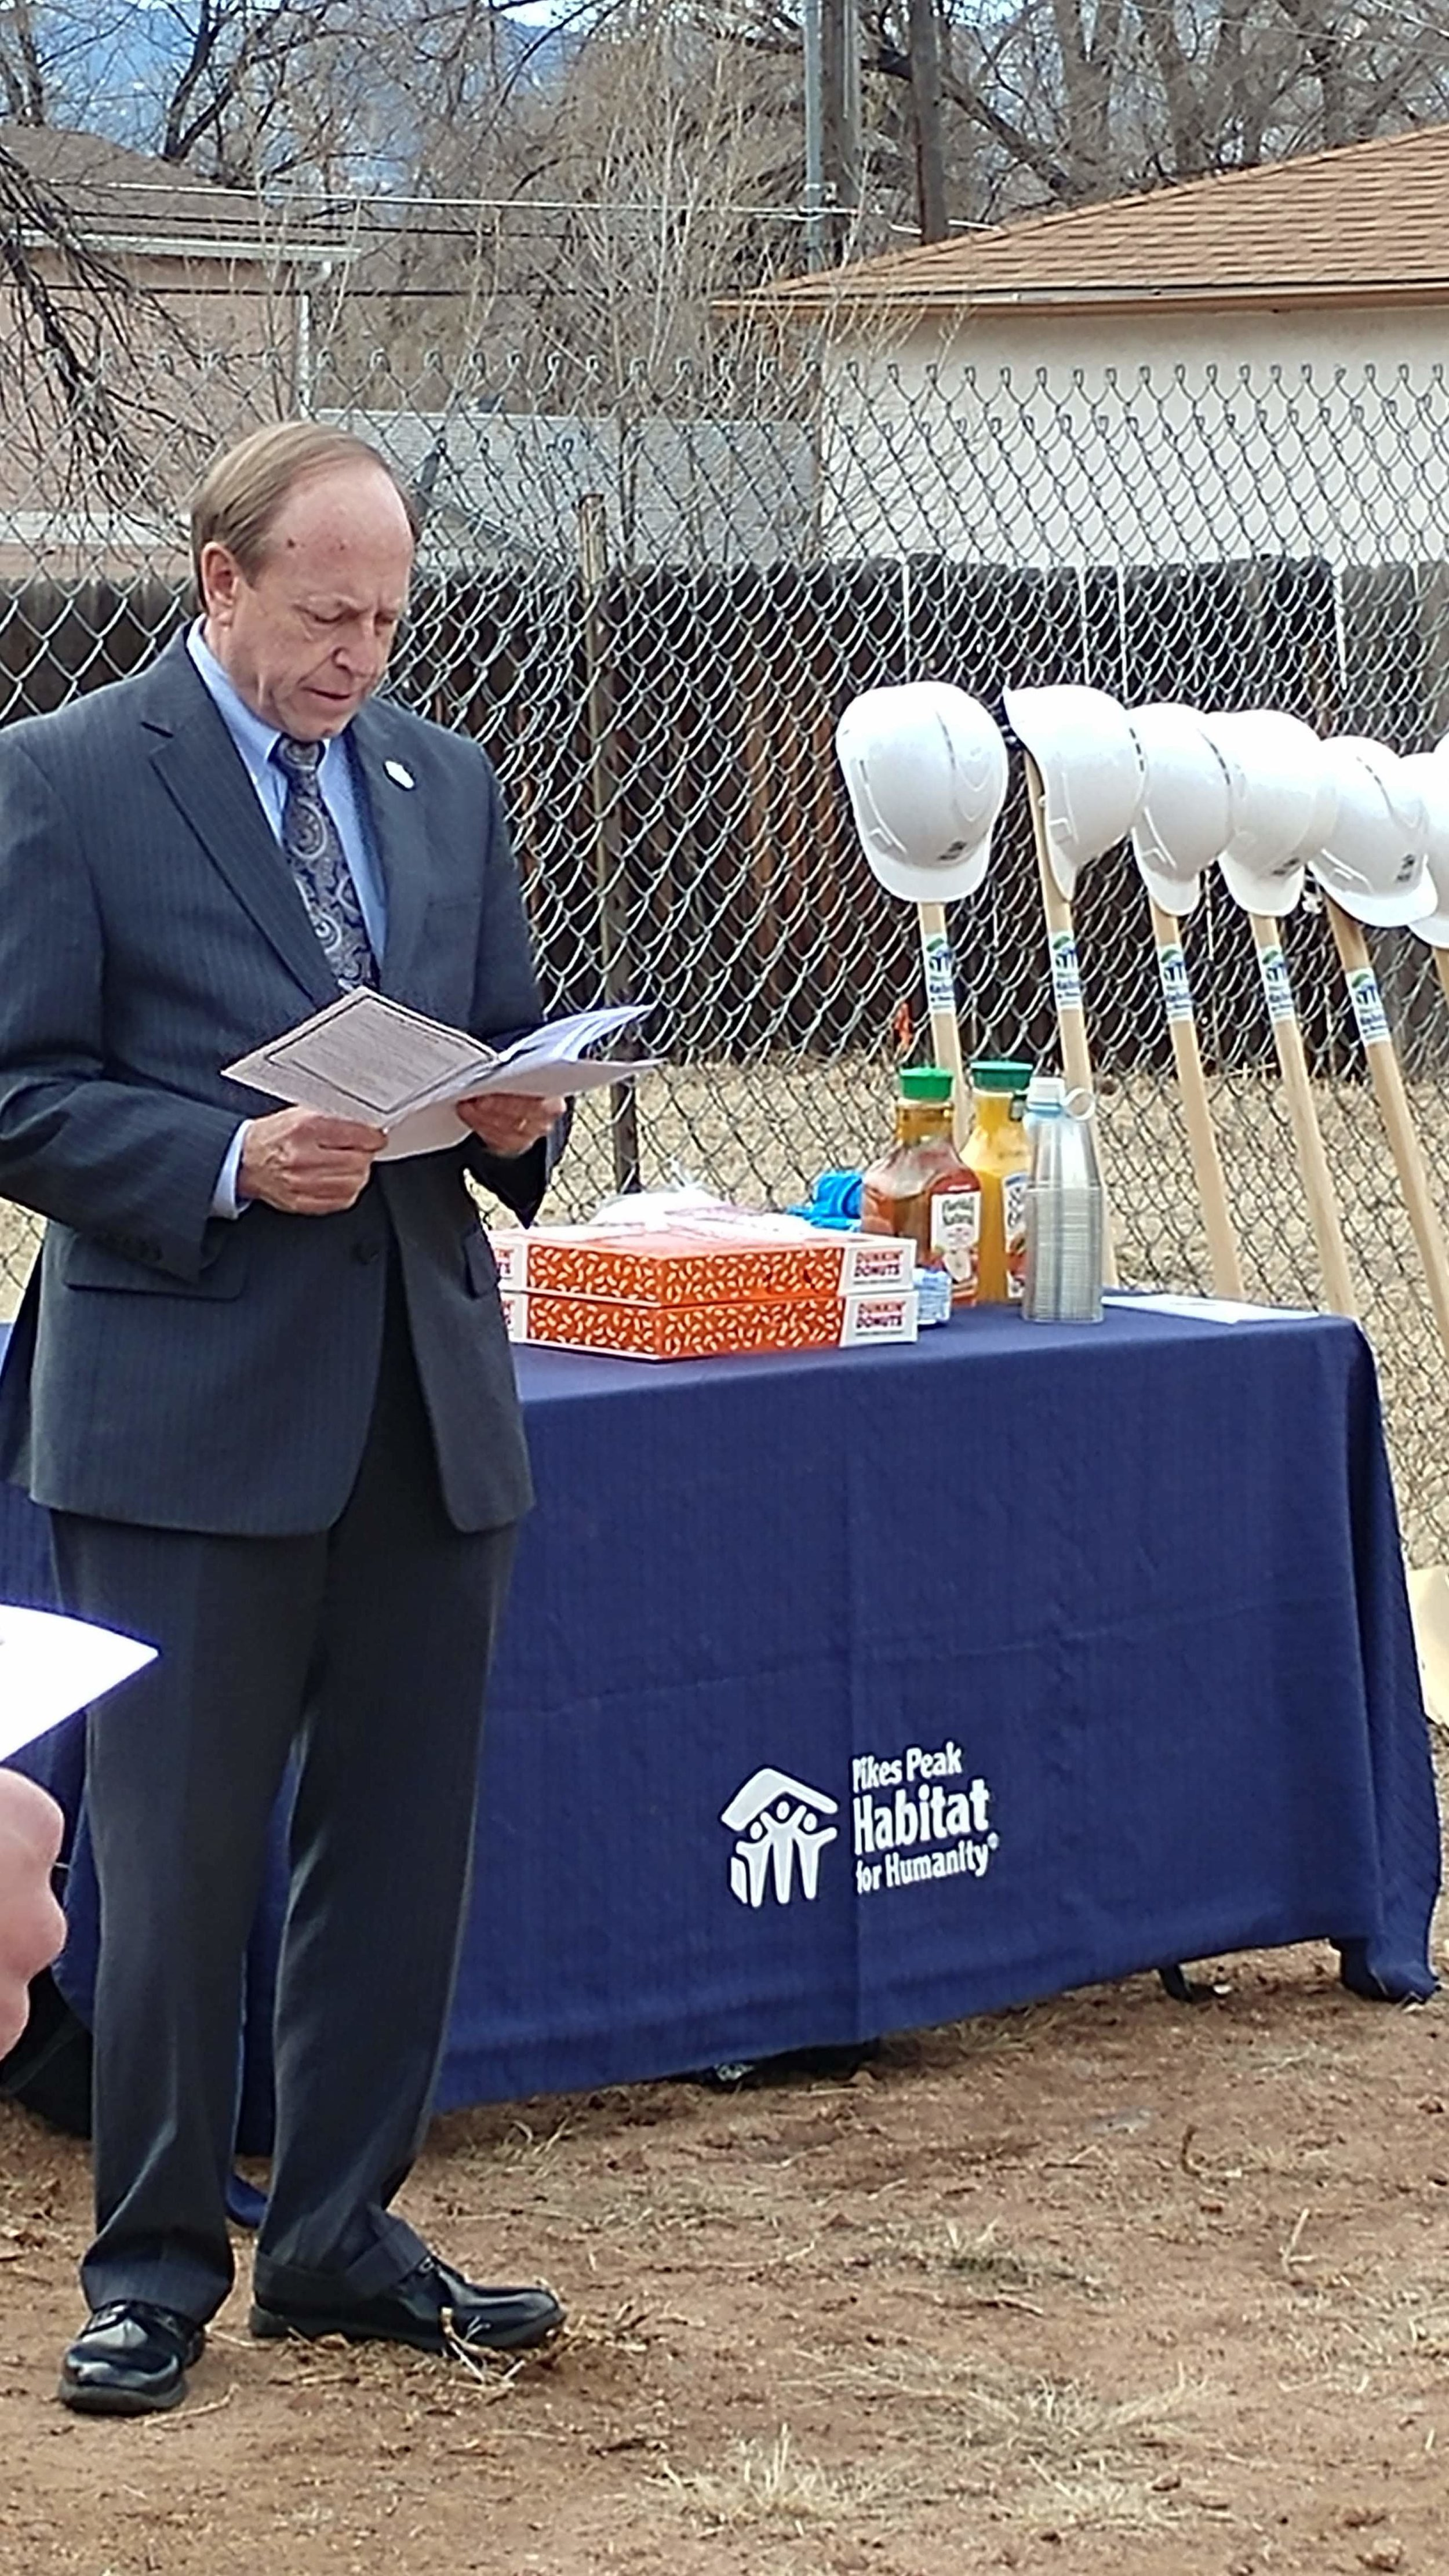 Mayor John Suthers at the Pikes Peak Habitat for Humanity ground blessing ceremony